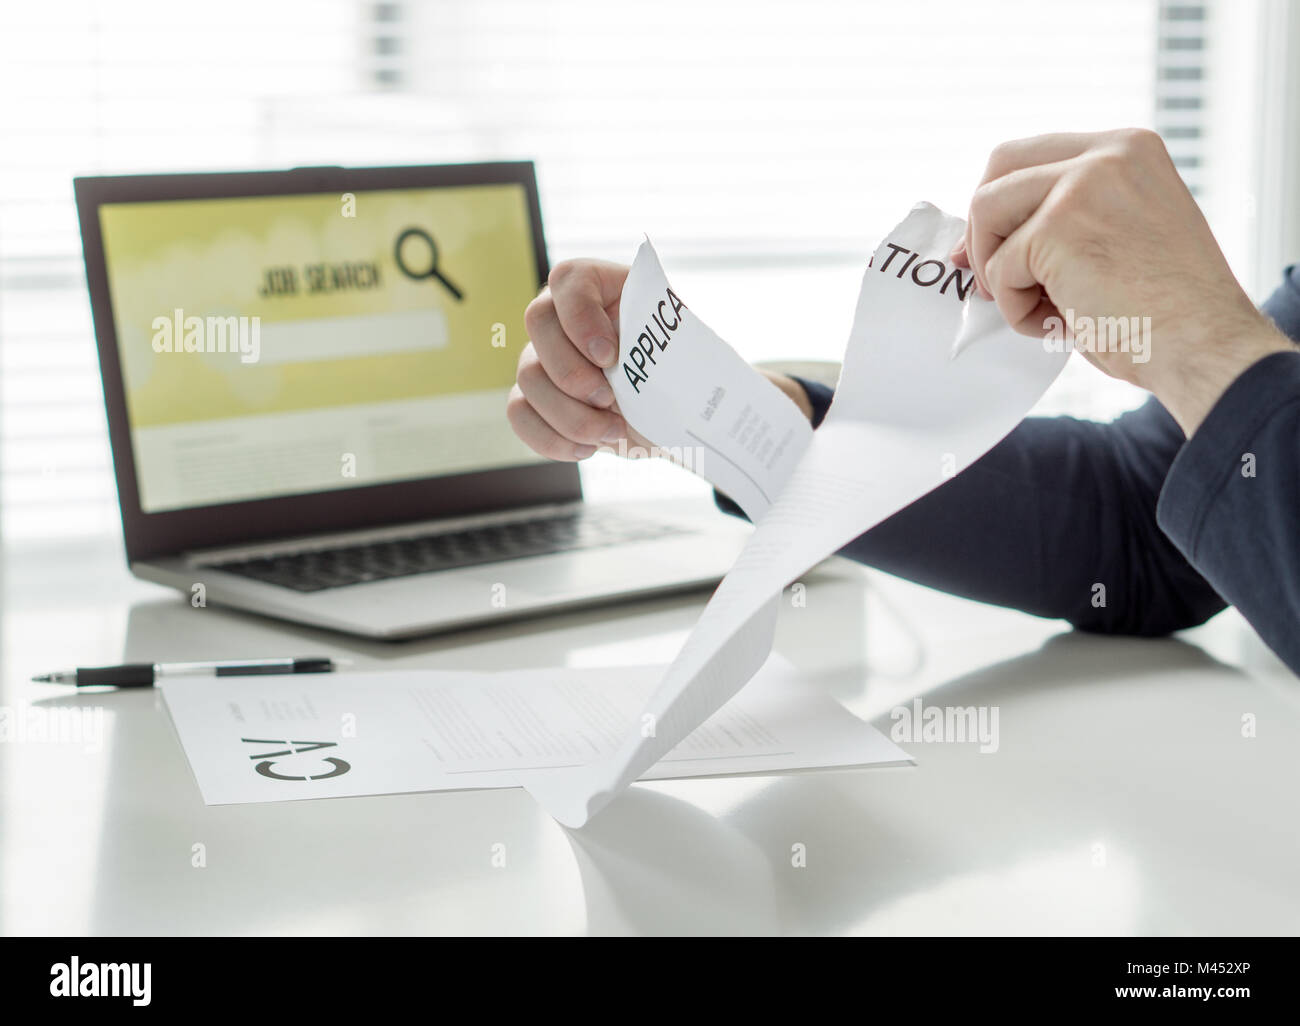 Man ripping job application paper. Person having problems writing his CV or finding work. Angry, frustrated and - Stock Image